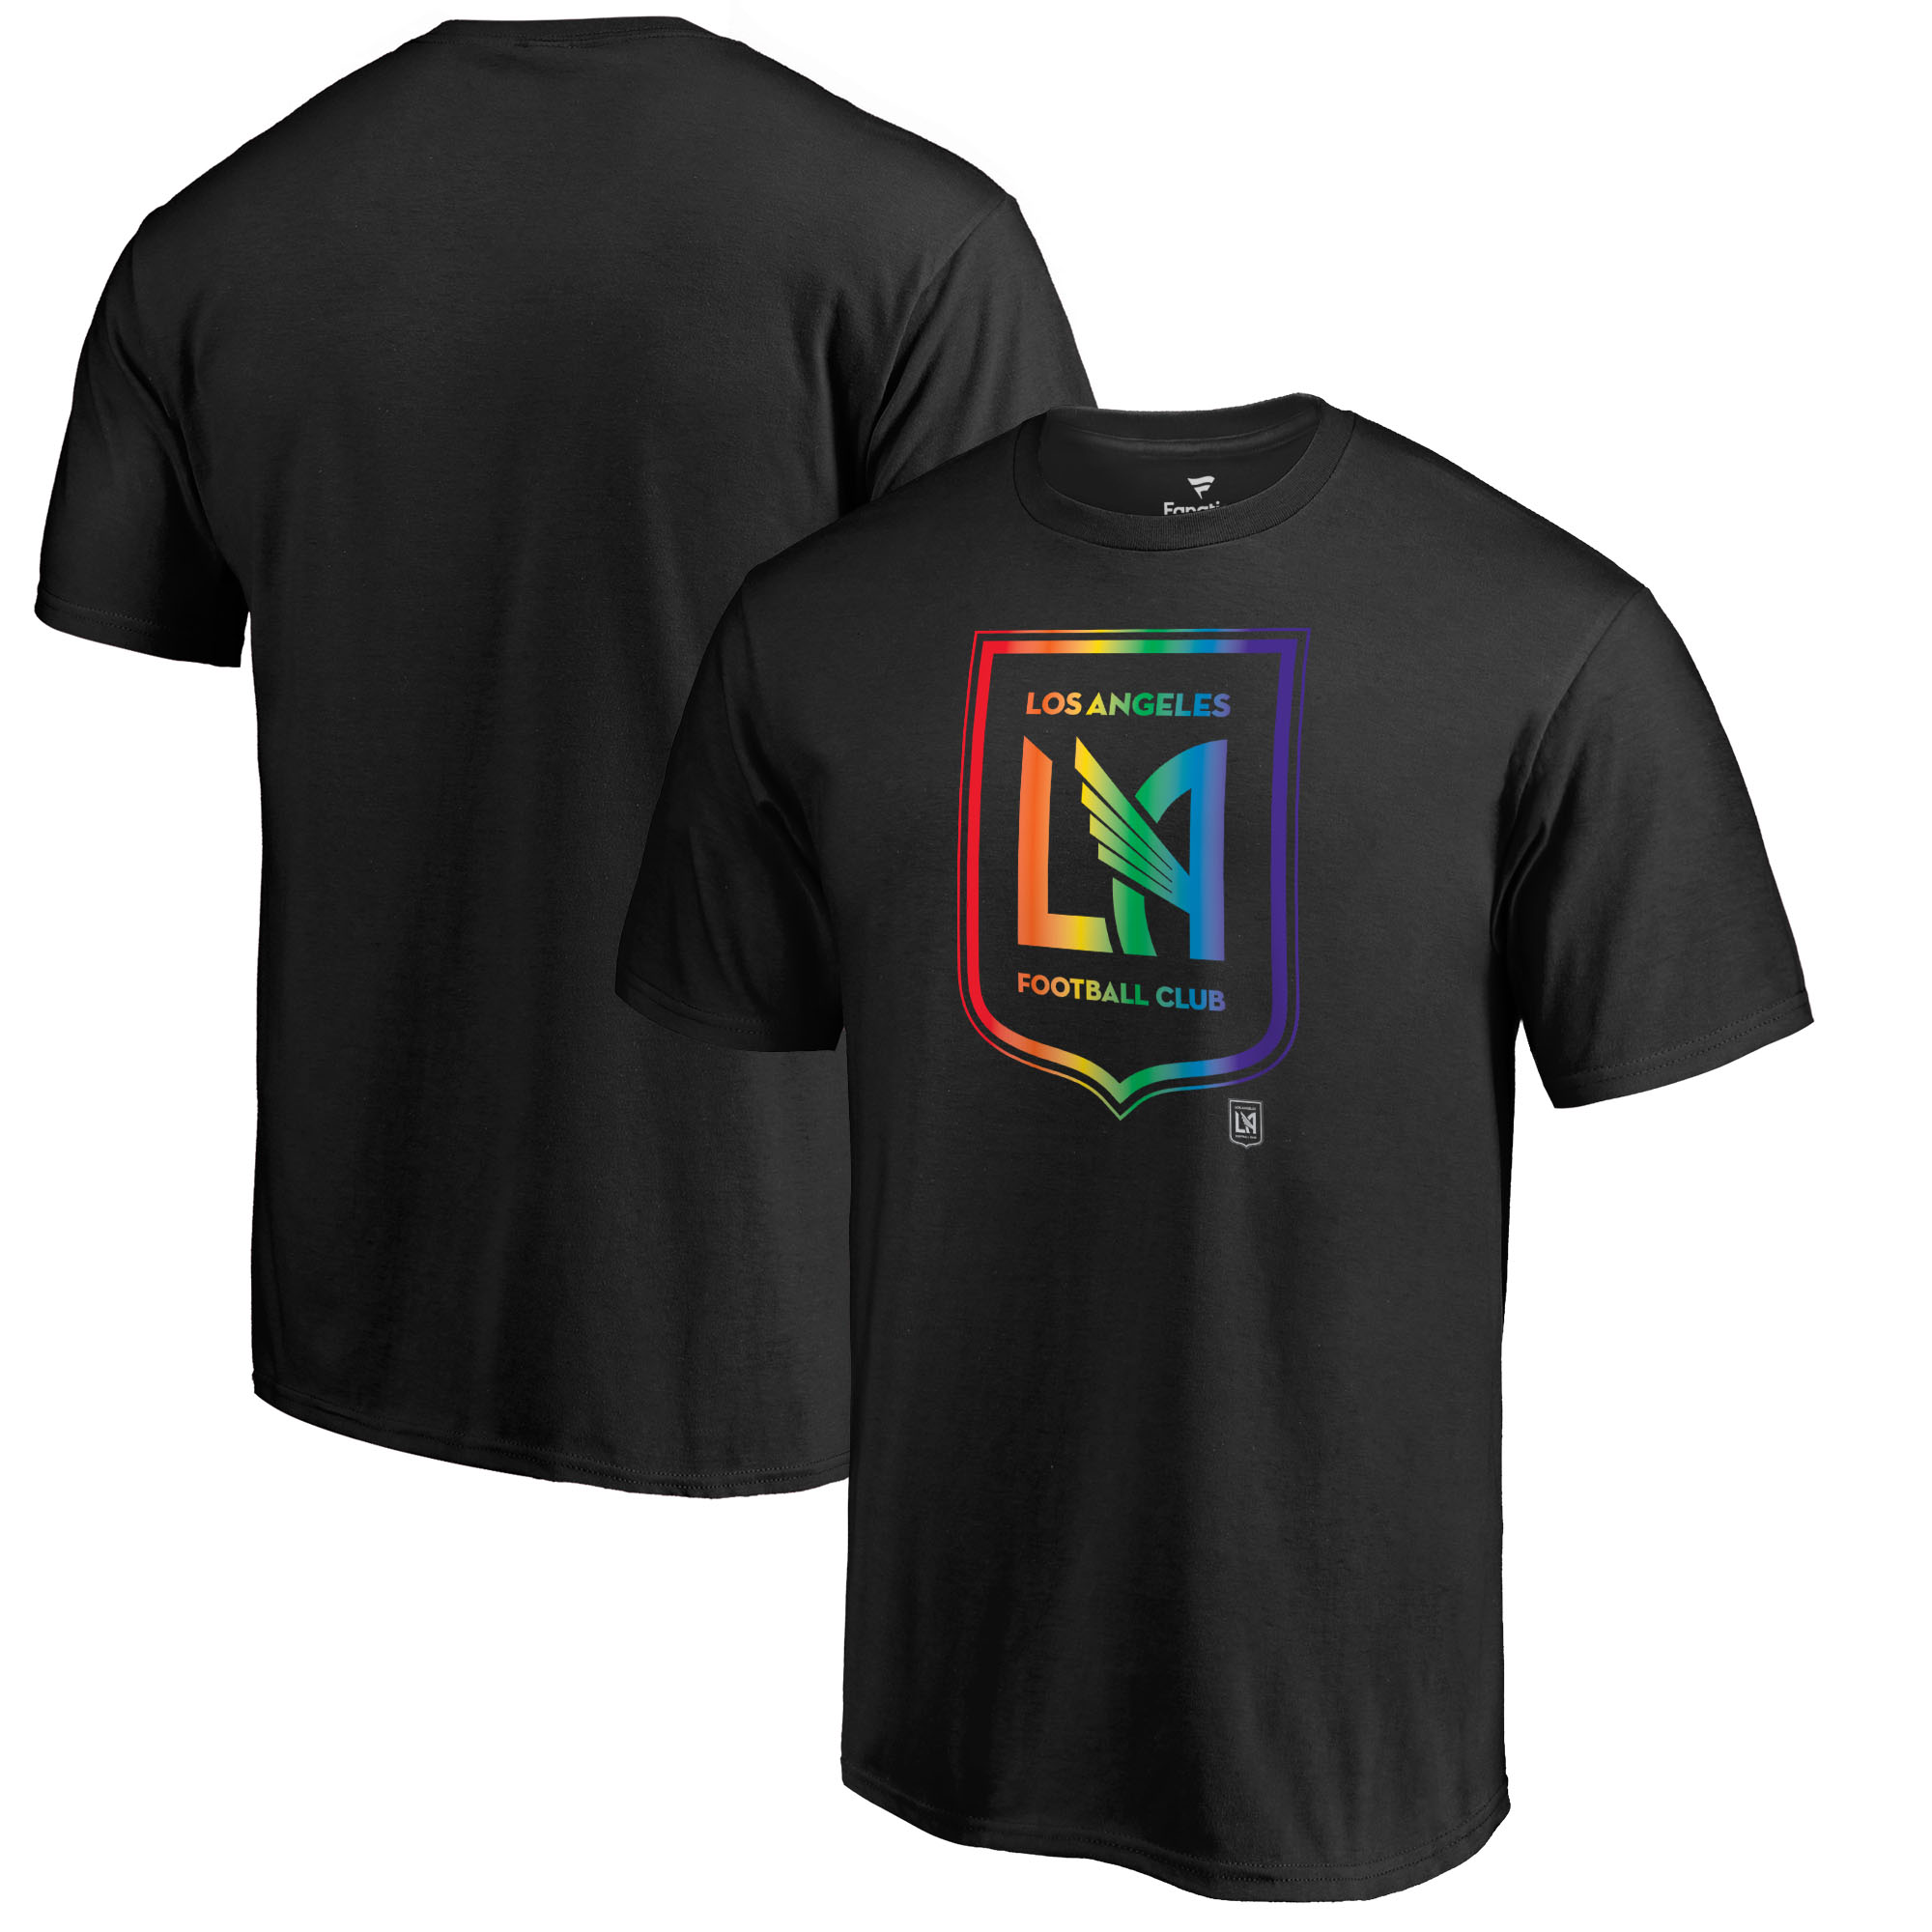 LAFC Fanatics Branded Team Pride T-Shirt - Black